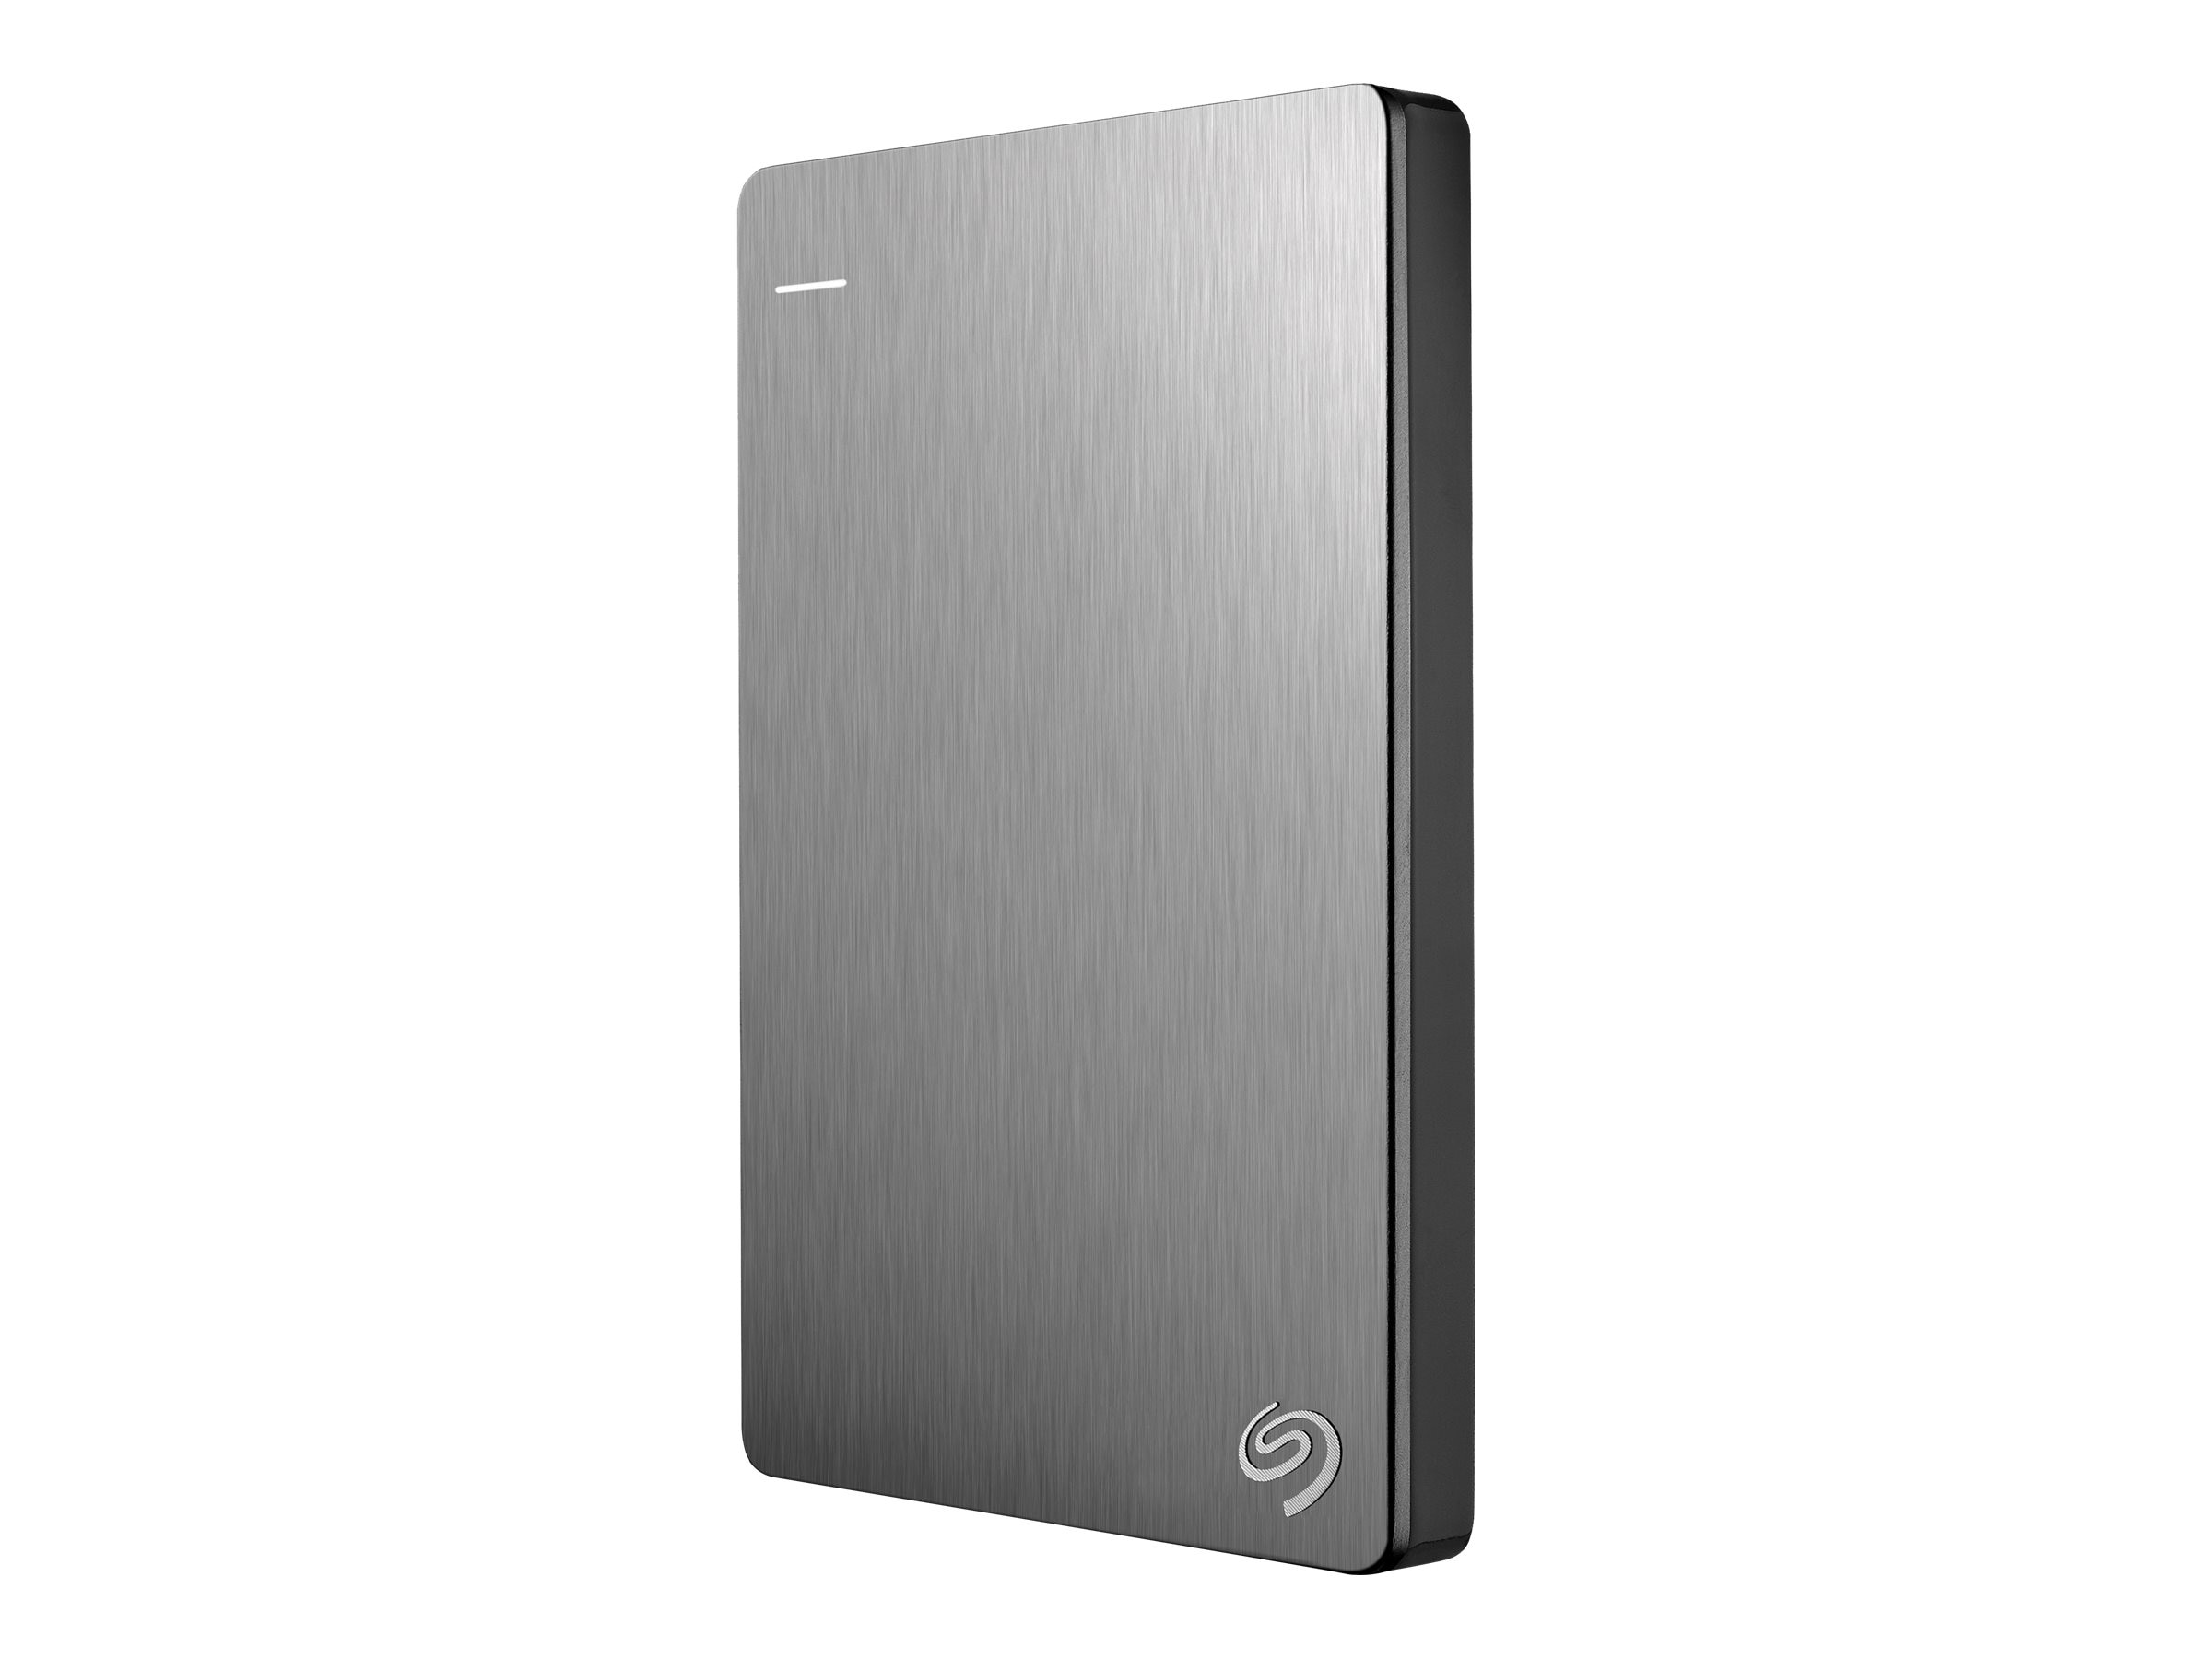 Seagate 1TB Backup Plus USB 3.0 Slim Portable Hard Drive - Silver